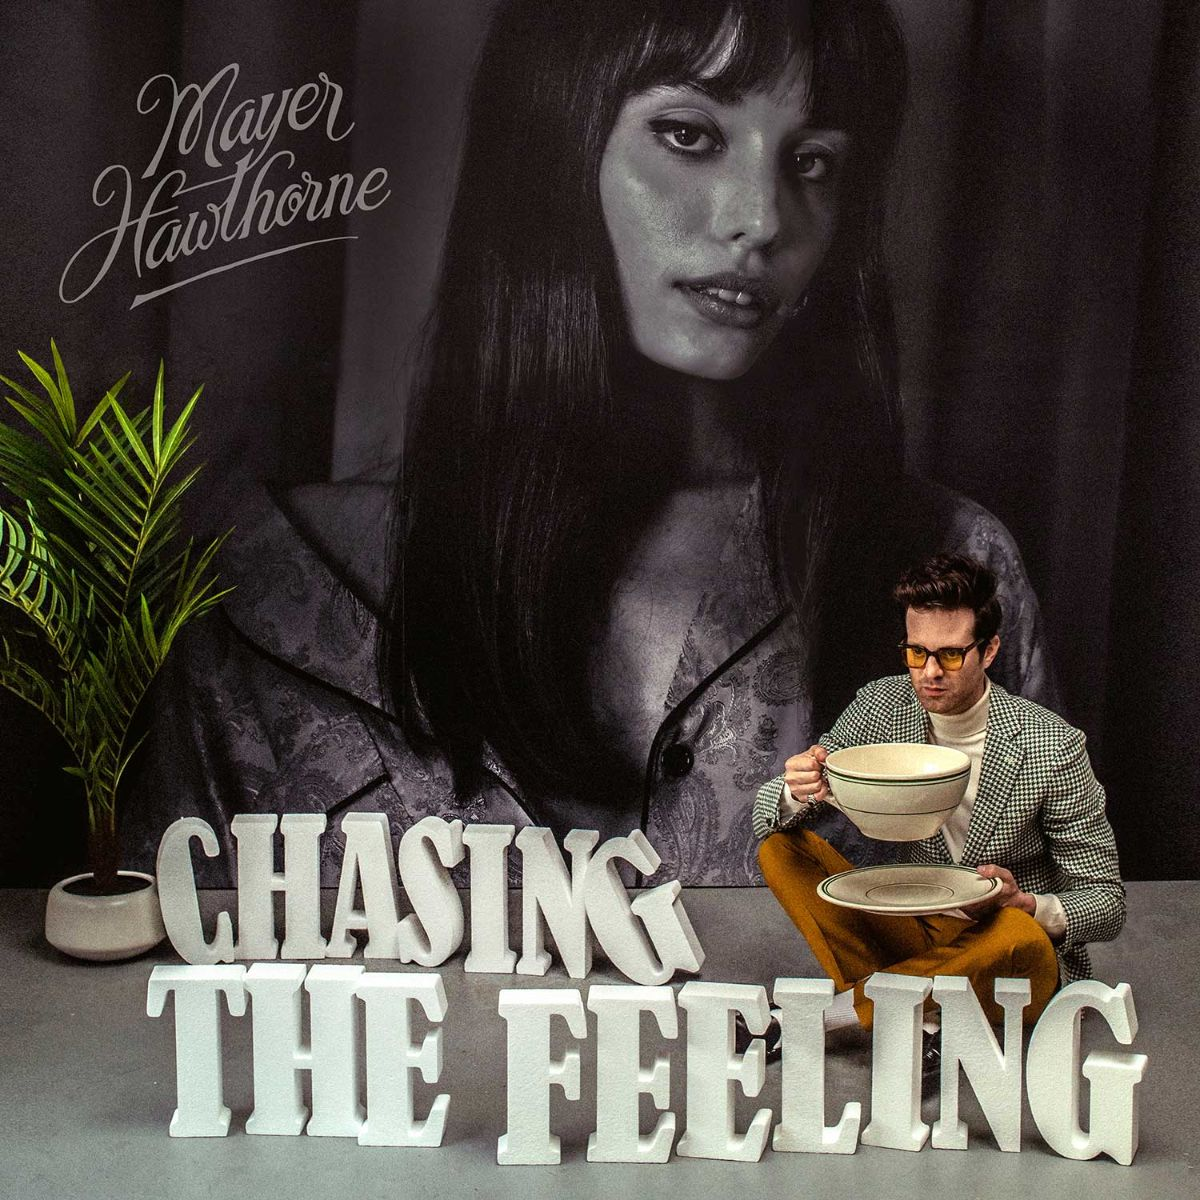 Chasing the Feeling